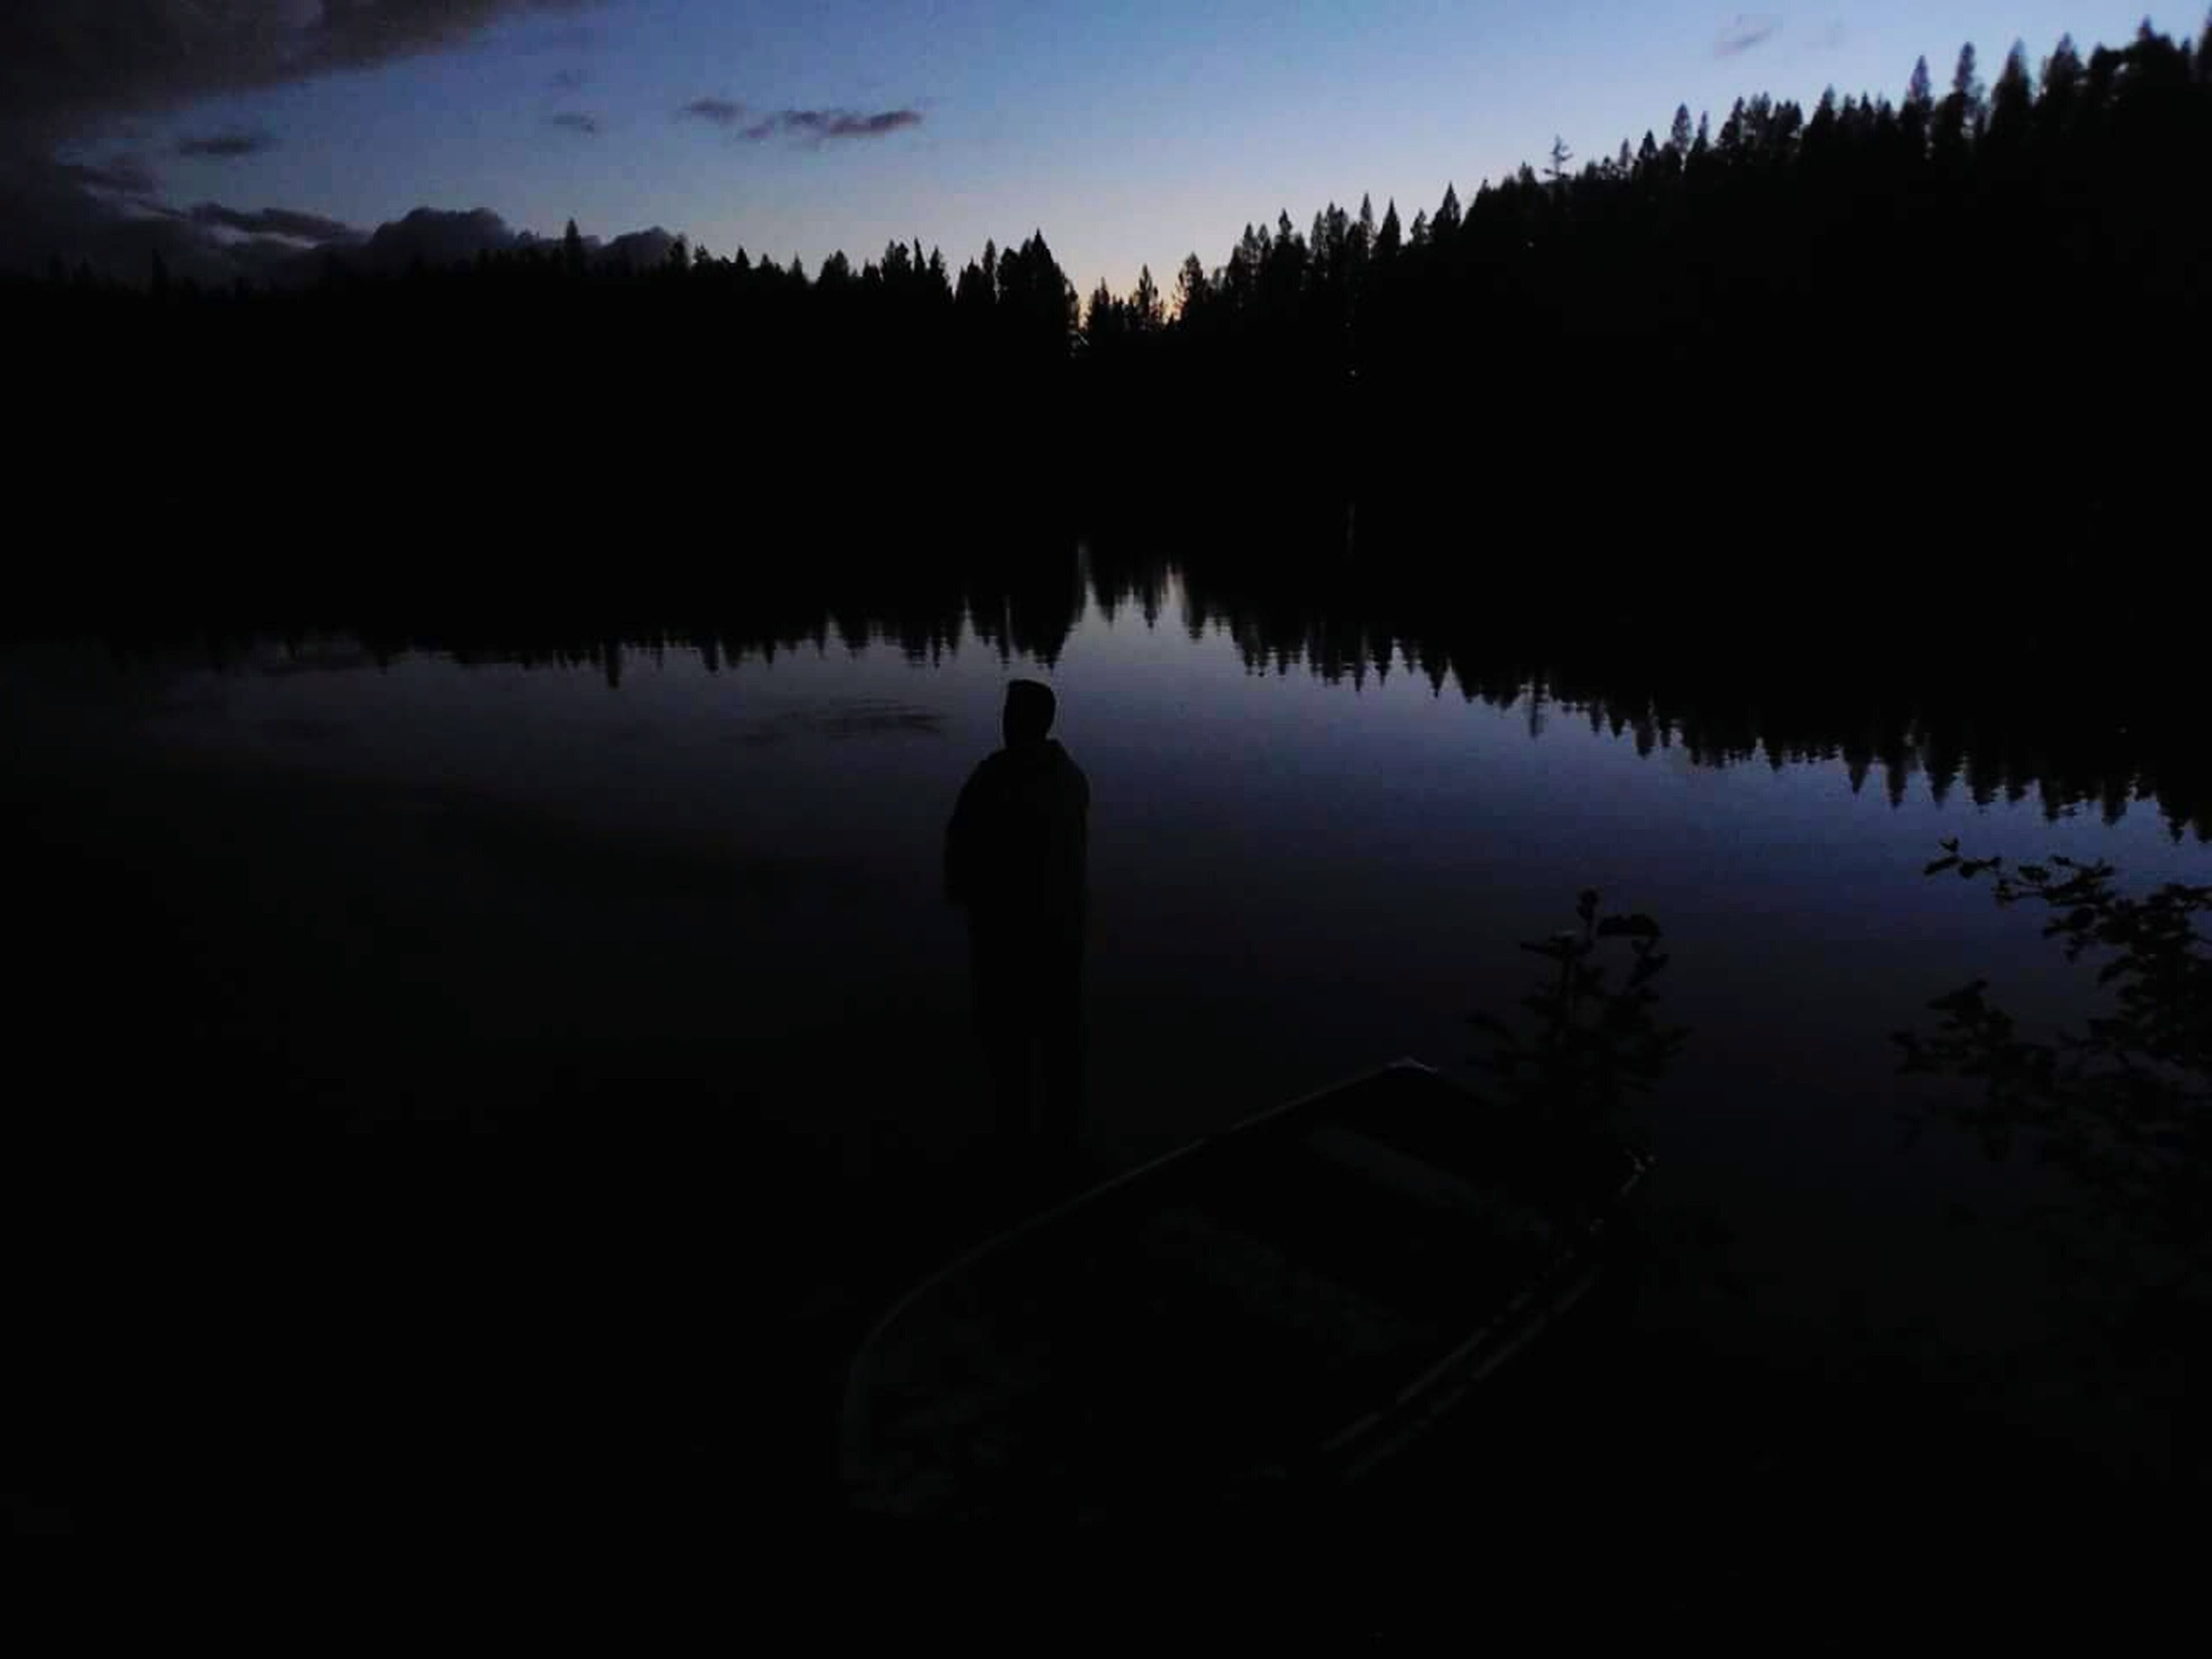 silhouette, water, lake, tranquility, reflection, sky, tranquil scene, scenics, sunset, beauty in nature, dusk, nature, tree, calm, blue, outdoors, idyllic, standing water, lakeshore, one person